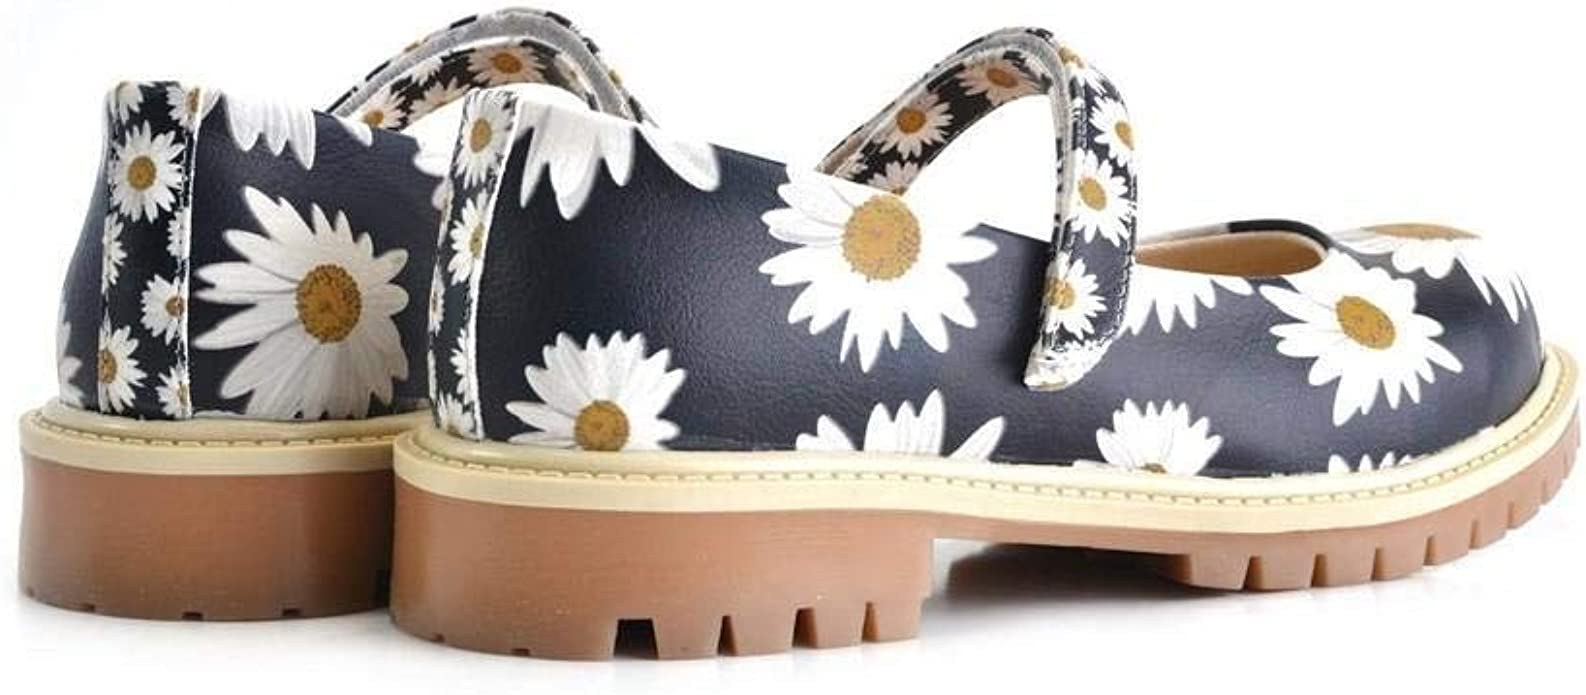 GOBY Ballerinas Shoes KTB108